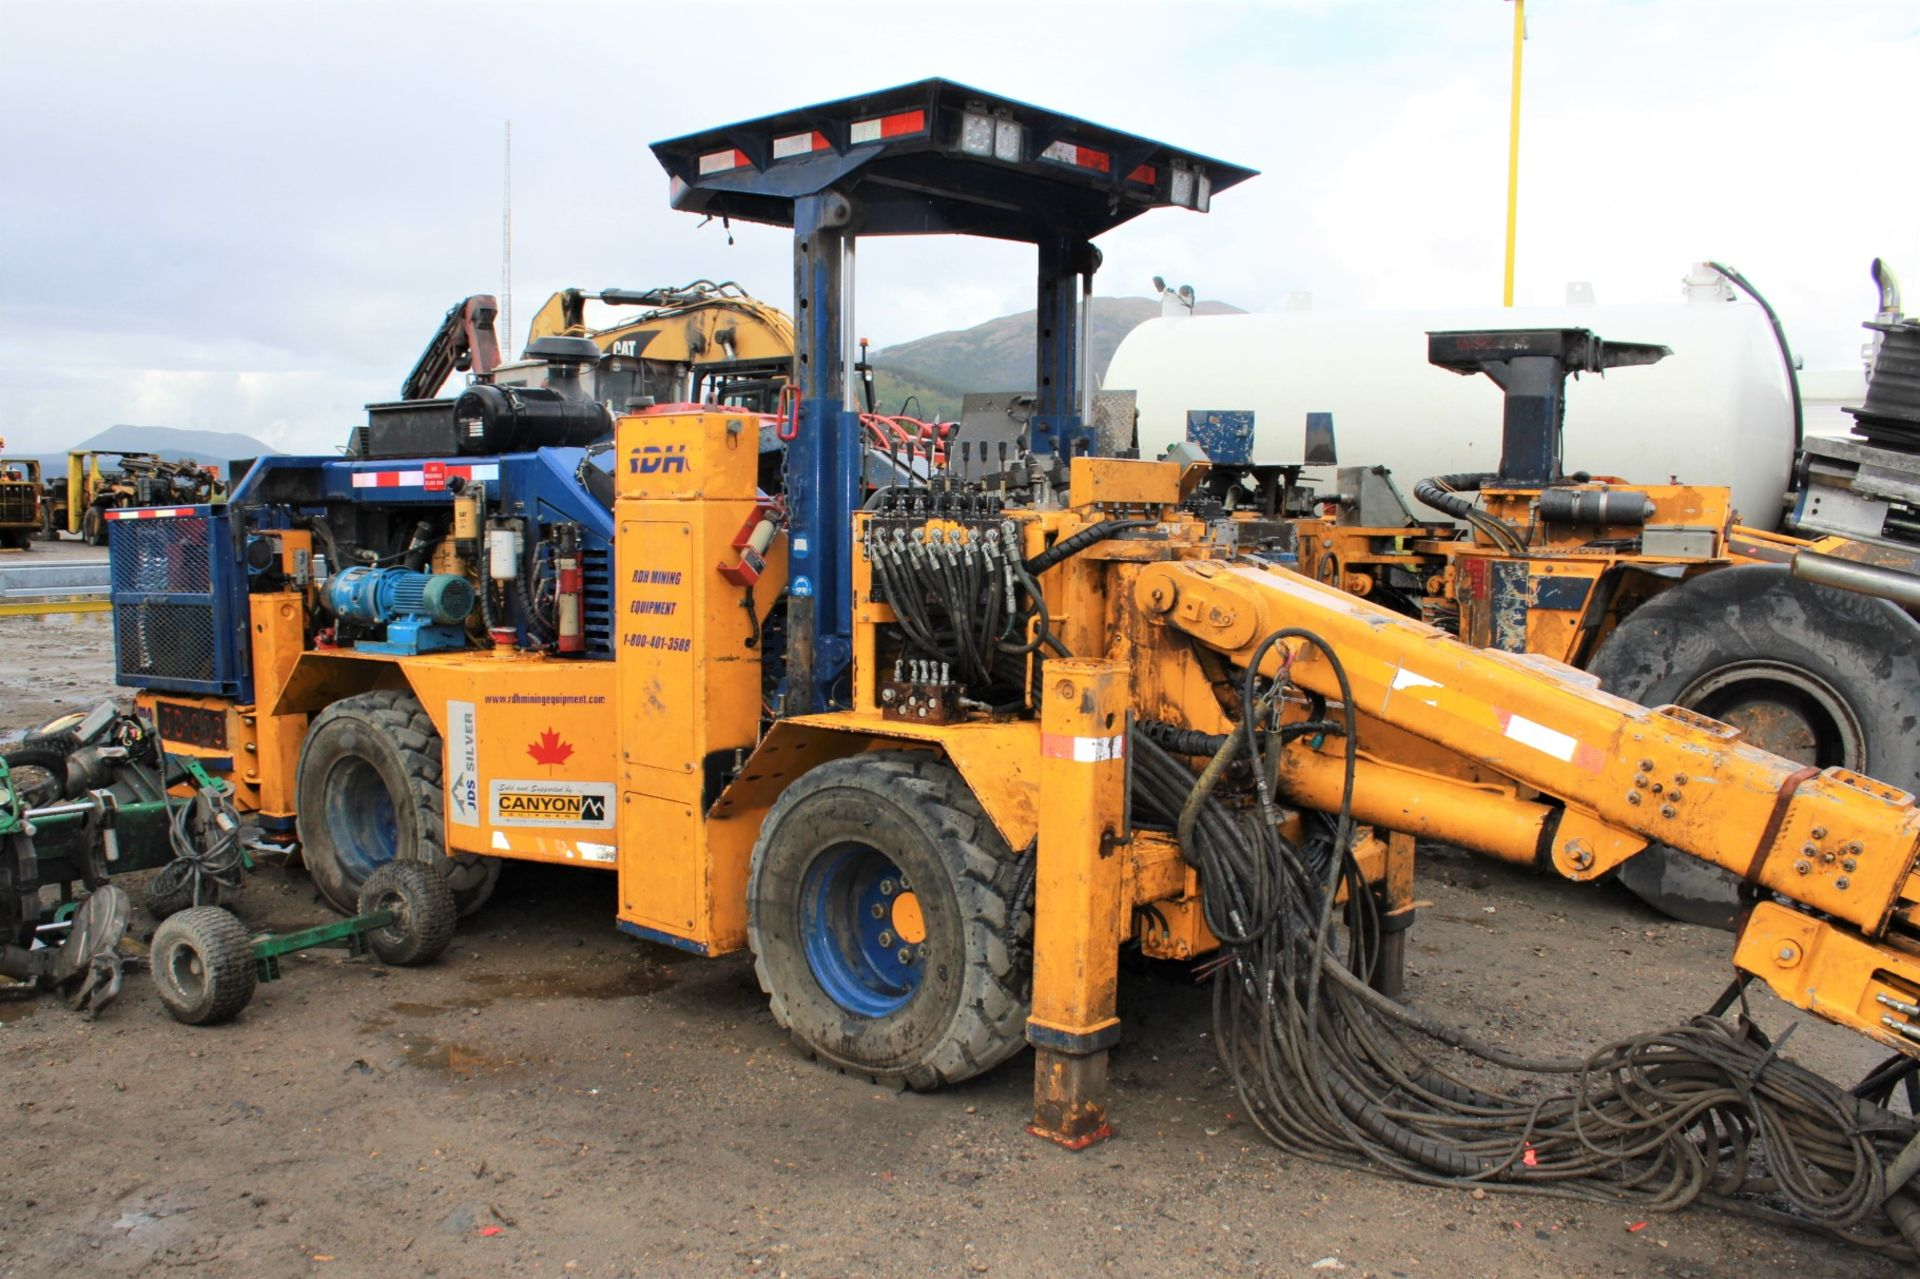 Lot 10 - 2008 RDH Drillmaster 100EH Jumbo Drill, Converted to Long Hoe, S/N 08-1046; Meter Shows 350 Hrs; (